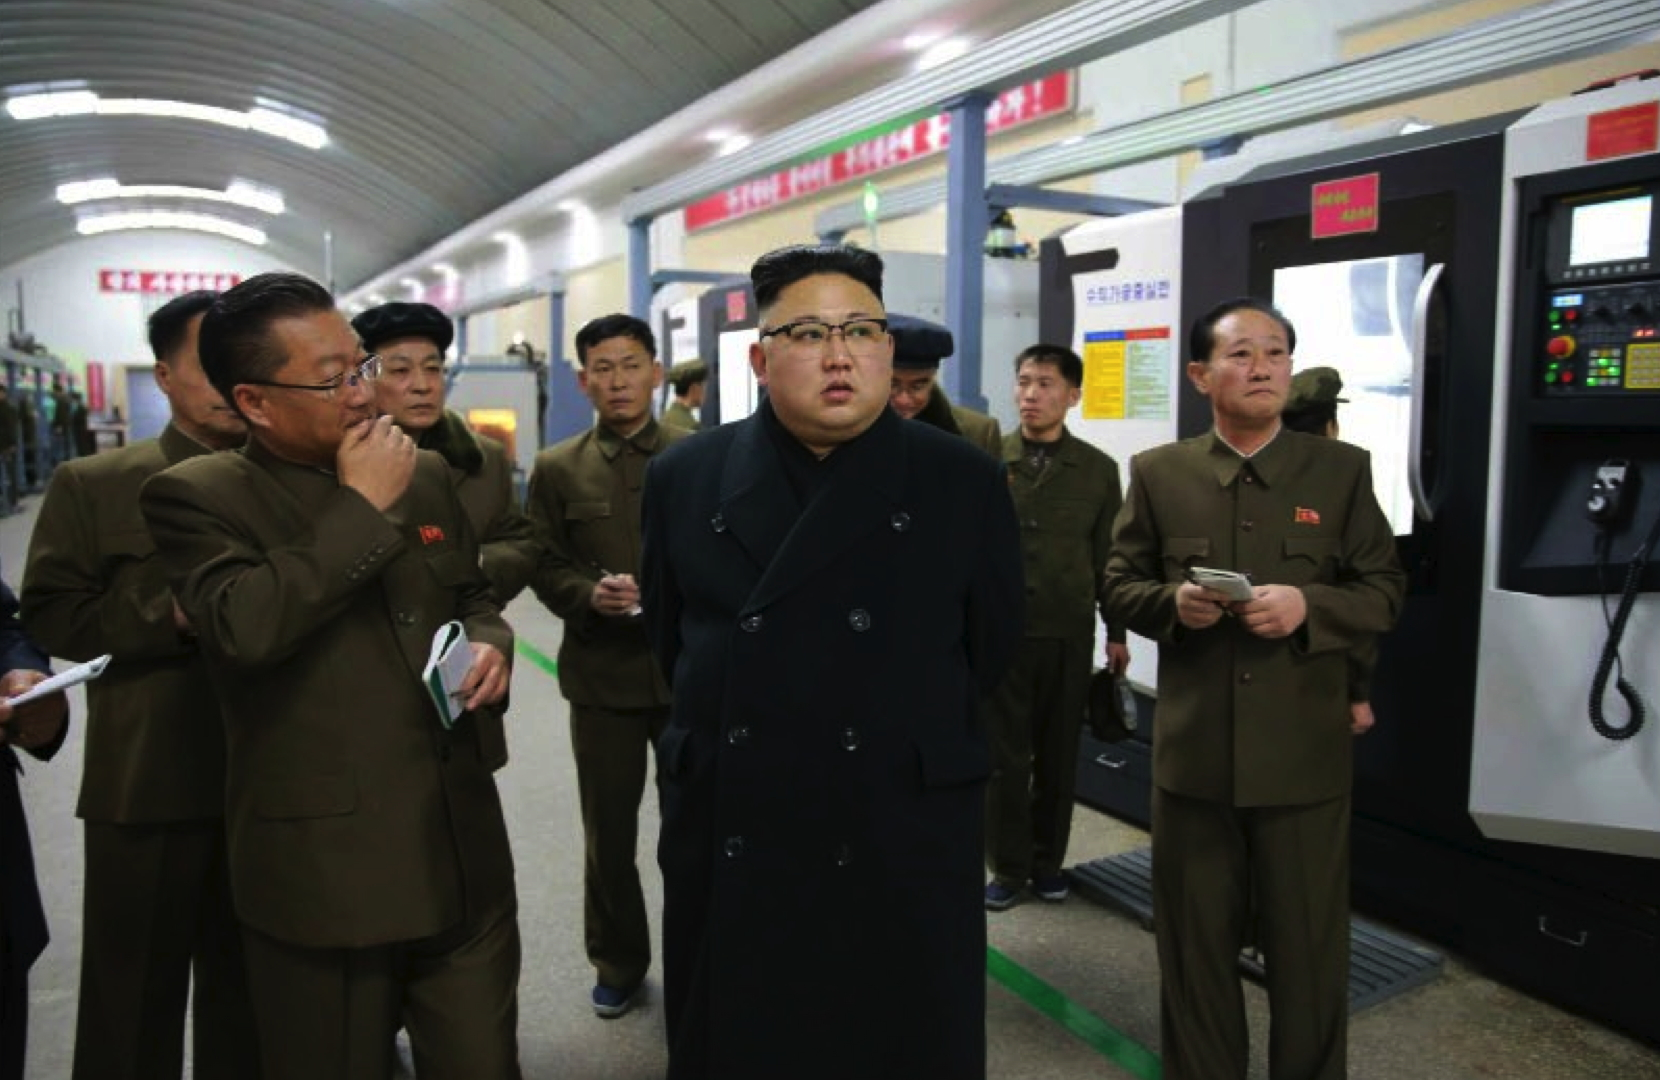 Kim Jong Un is briefed about production at the Kangdong Precision Machine Plant in the suburbs of Pyongyang in a photo which appeared top-center on the front page of the February 7, 2017 edition of WPK daily organ Rodong Sinmun (Photo: Rodong Sinmun).